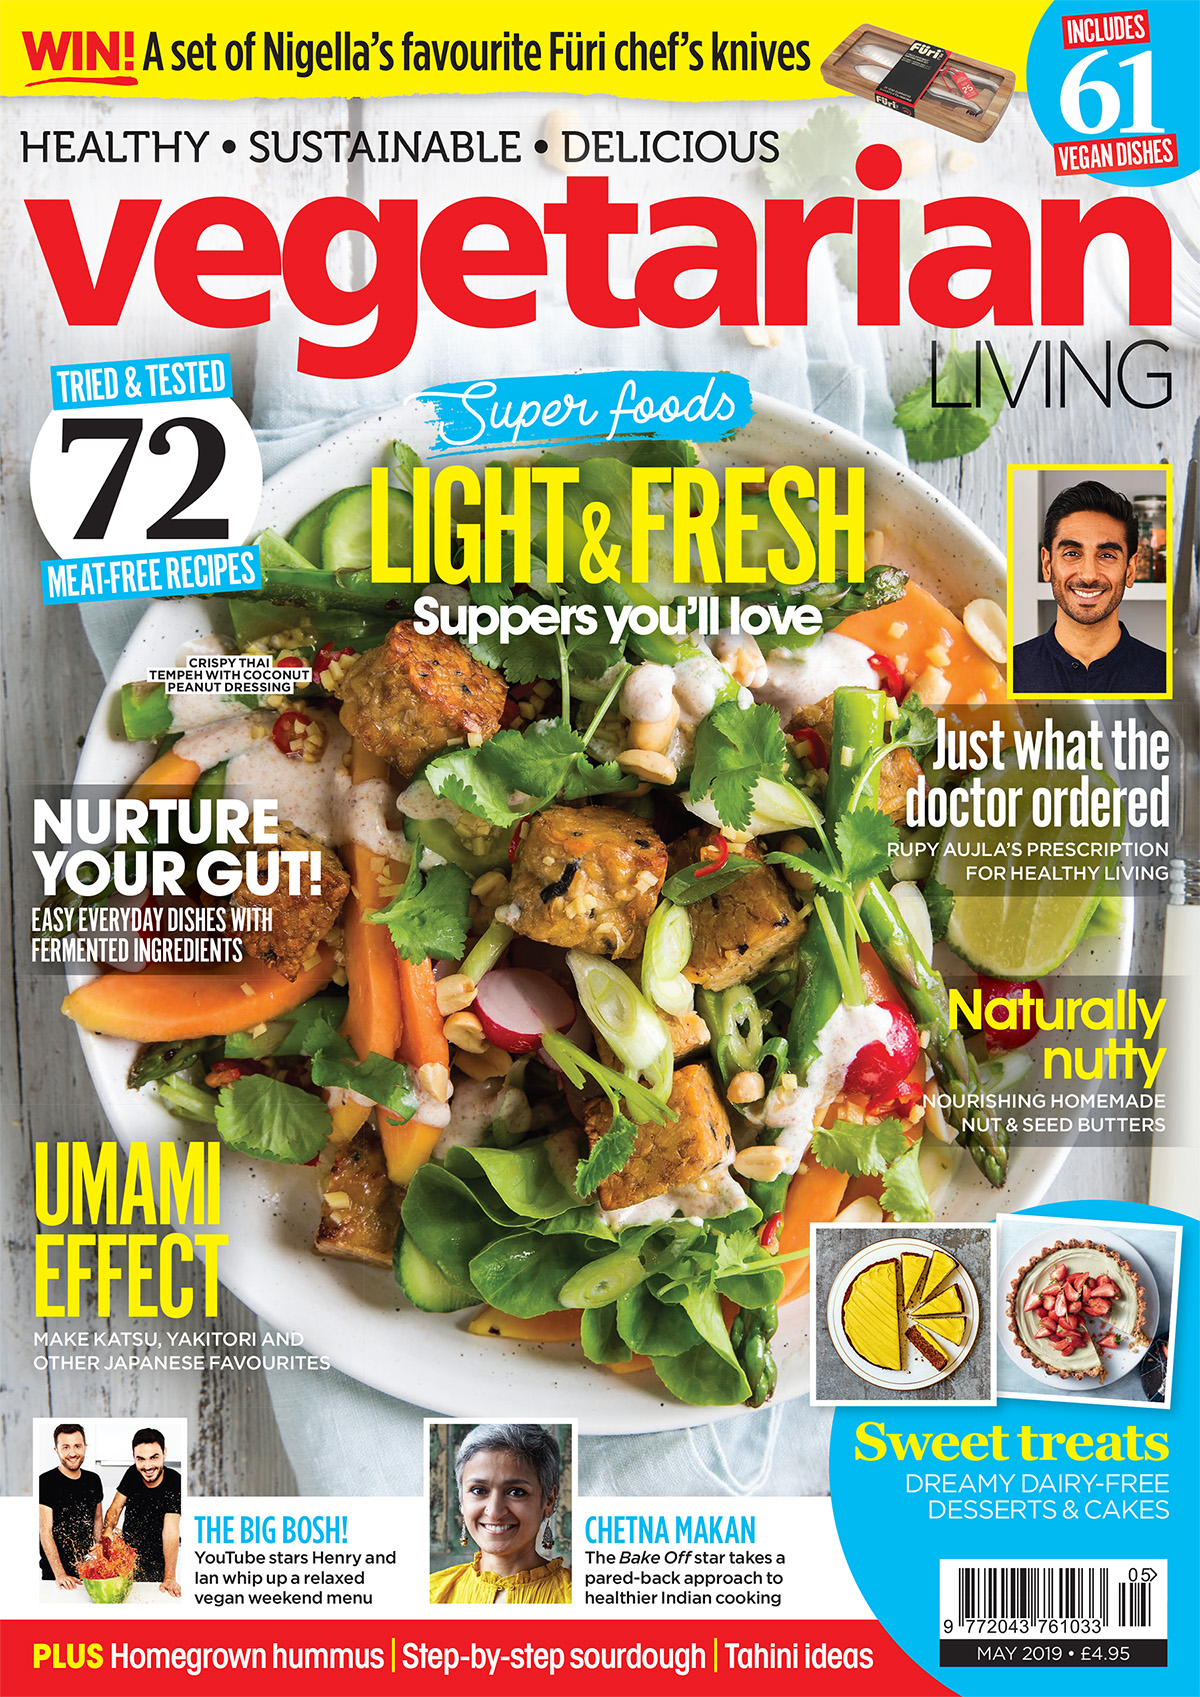 VL May 2019 Front Cover.jpg